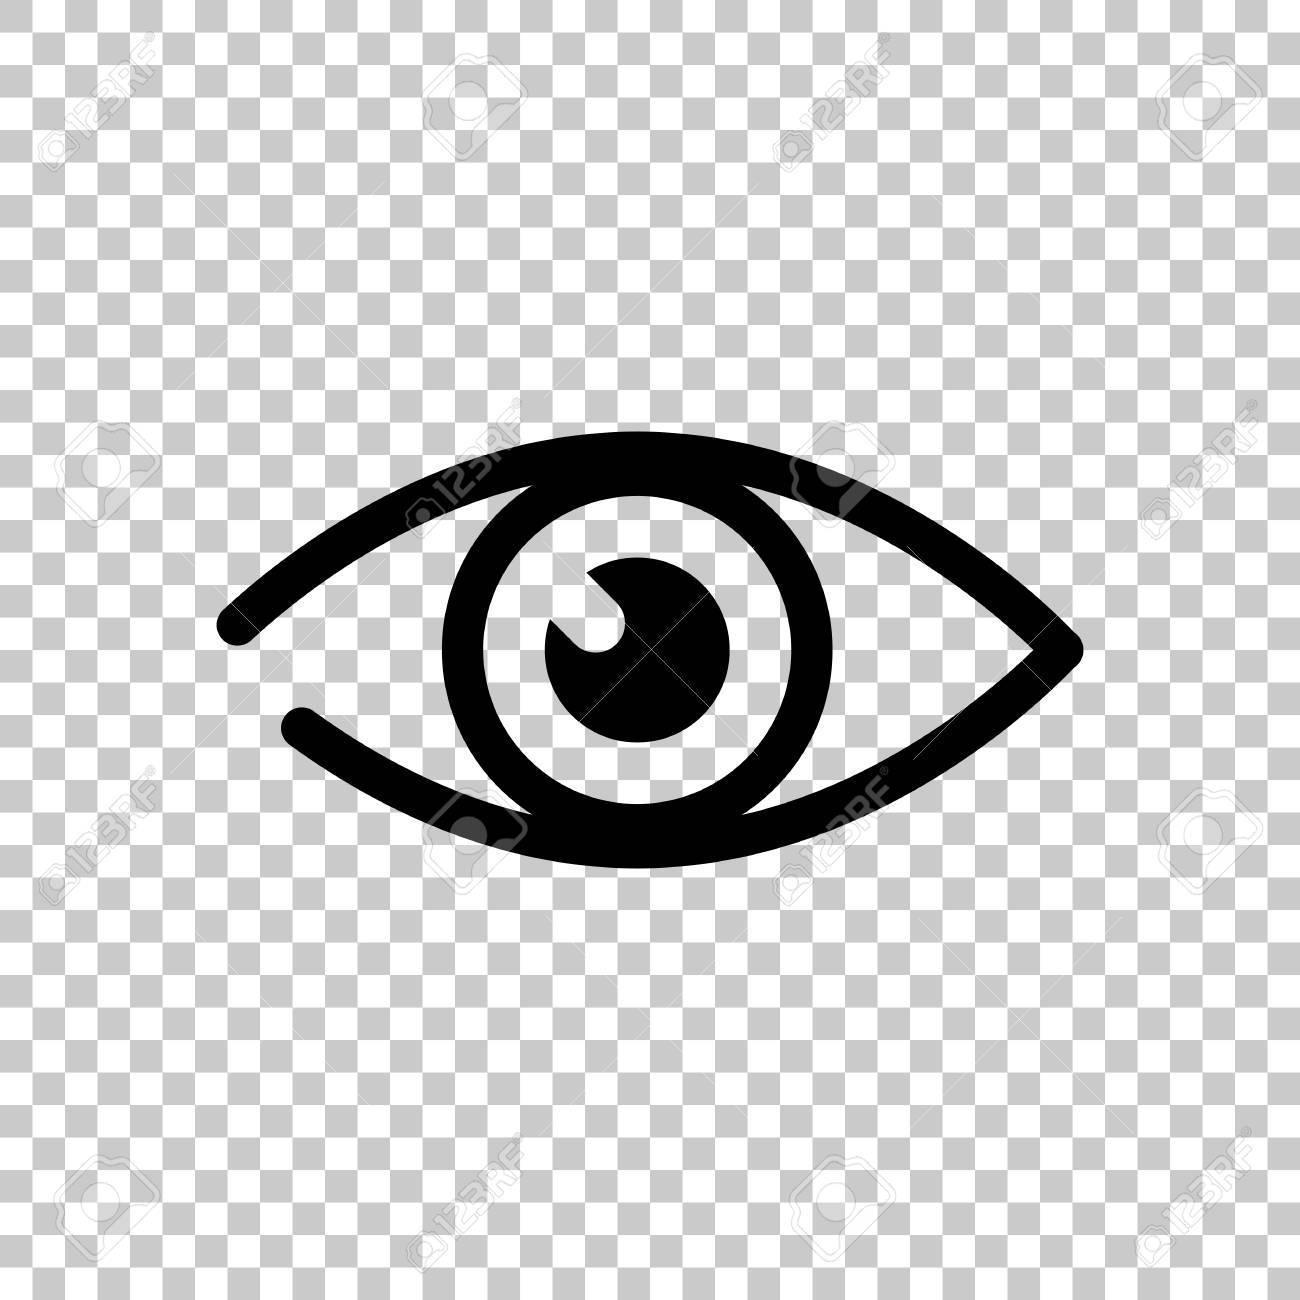 Simple Eye Icon On Transparent Background Royalty Free Cliparts Vectors And Stock Illustration Image 96765966